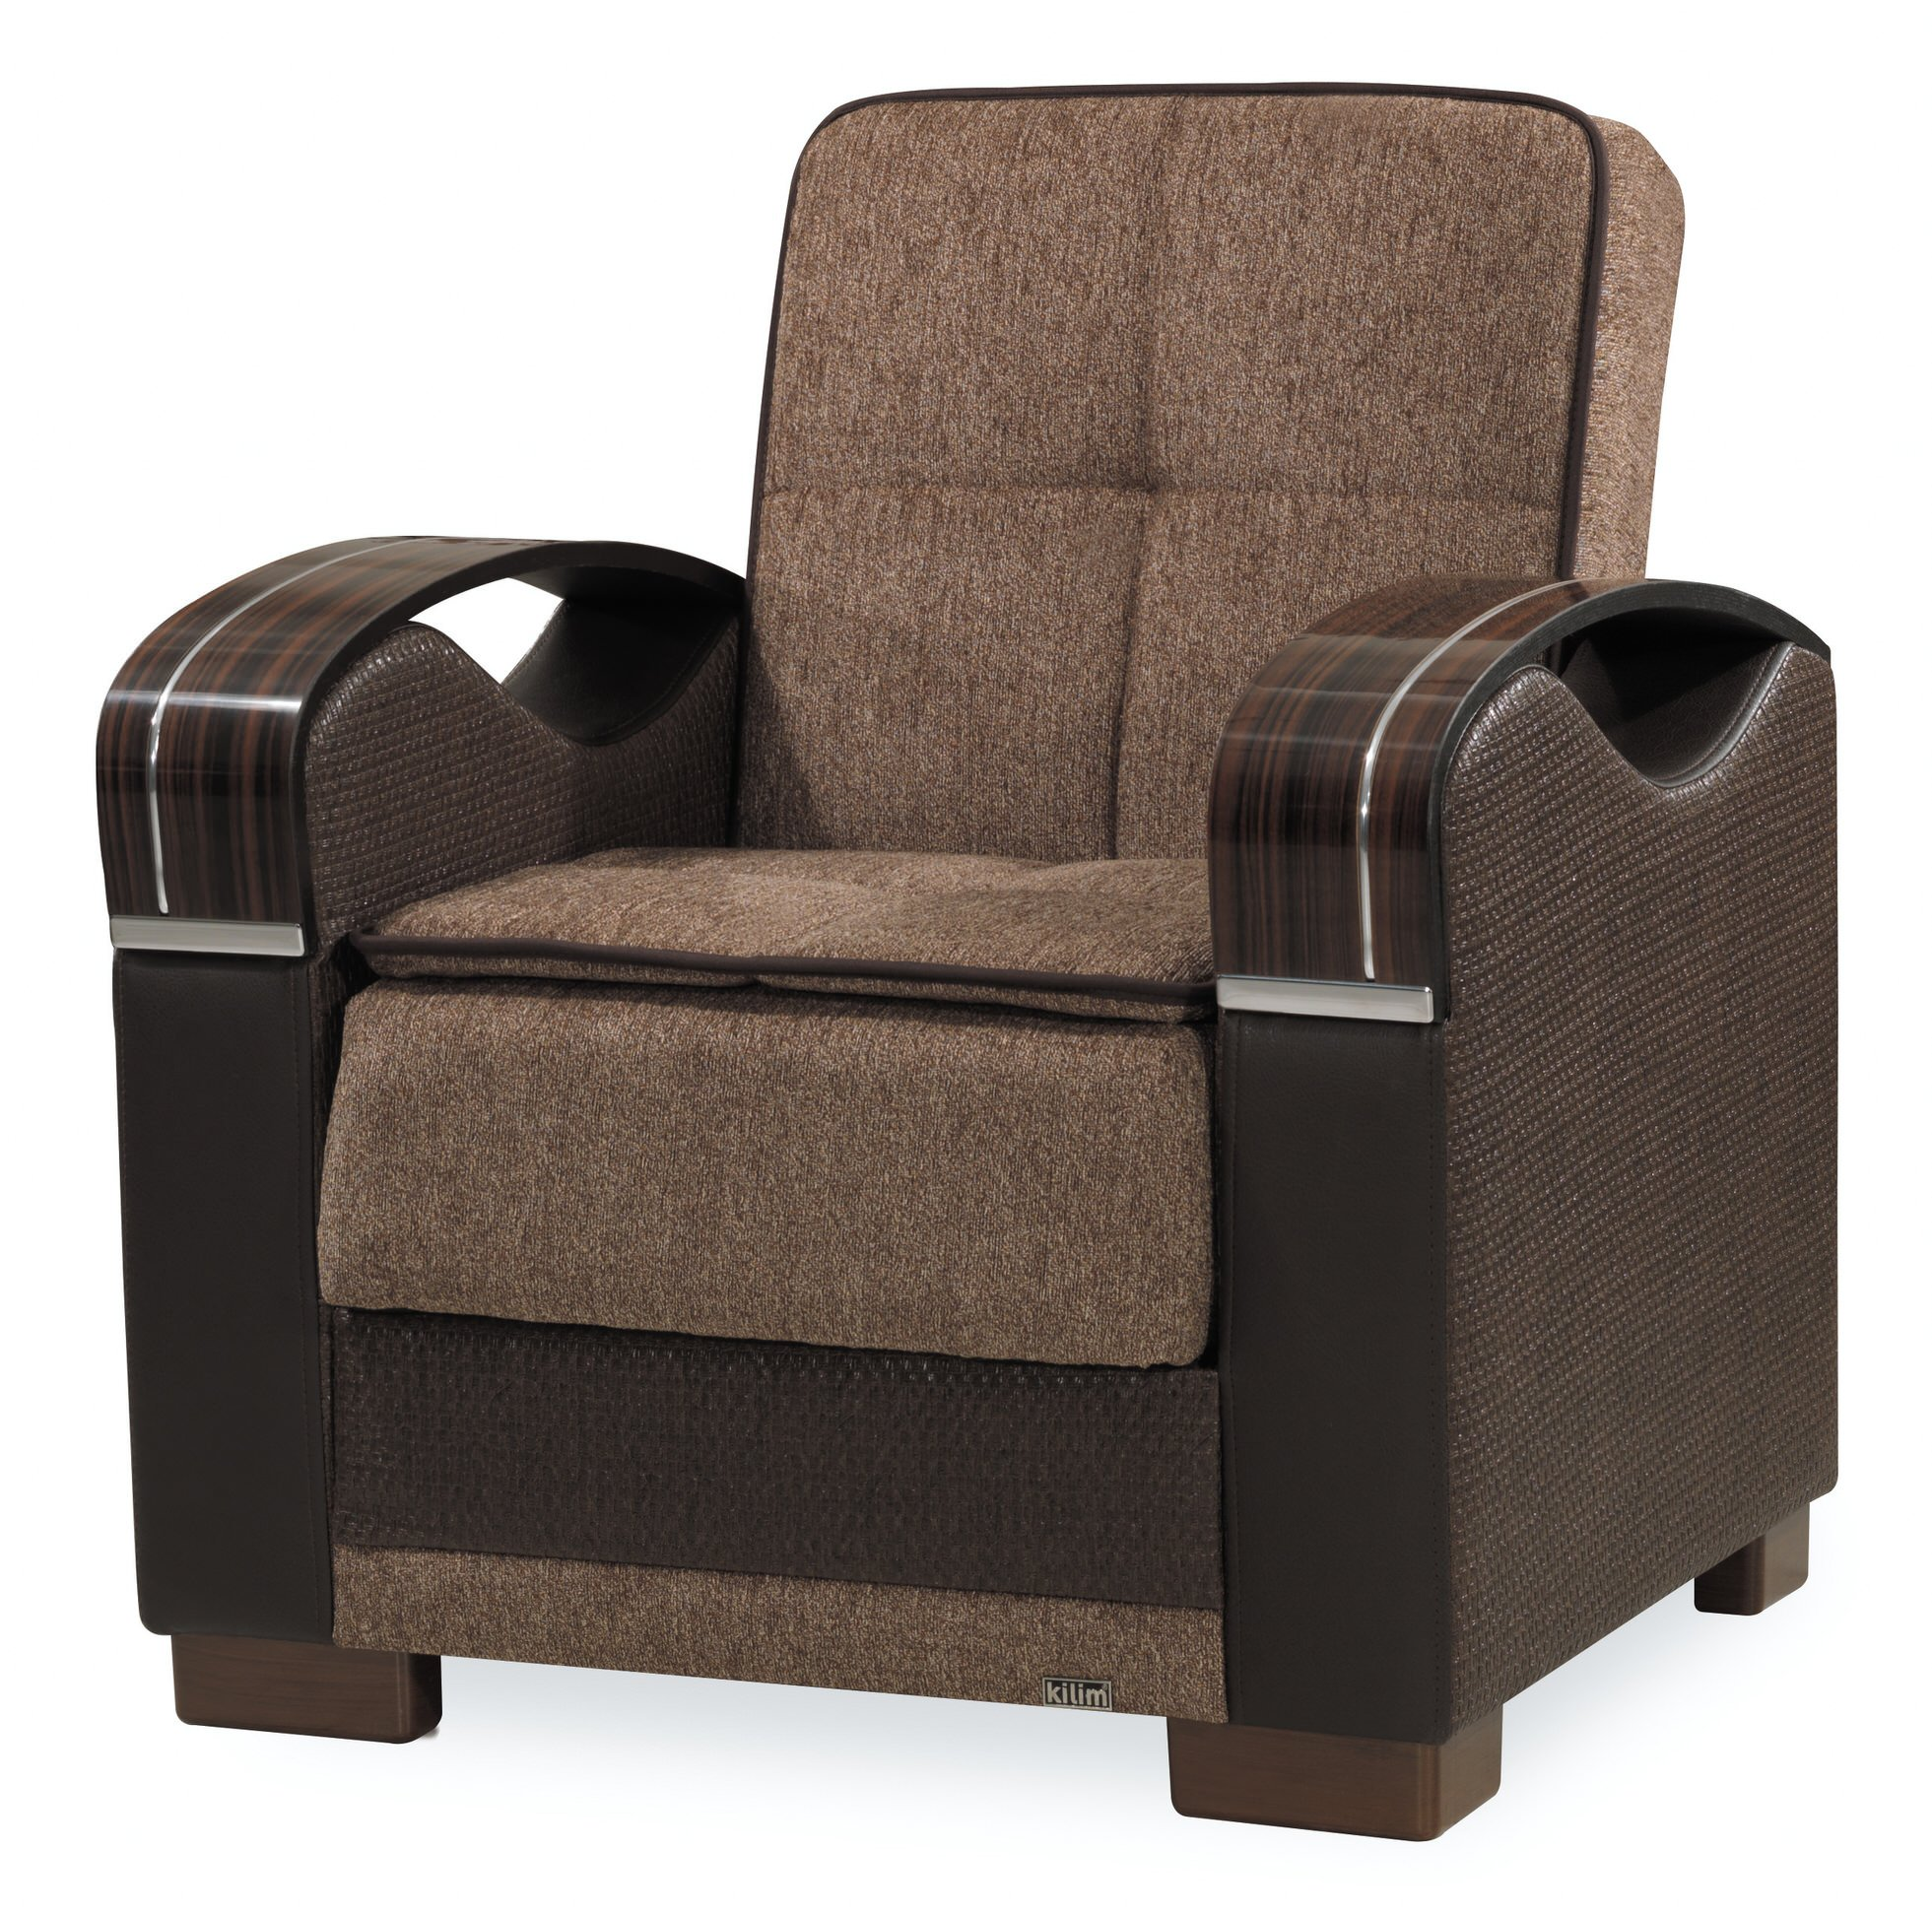 Admirable Bristol Brown Convertible Chair By Casamode Short Links Chair Design For Home Short Linksinfo